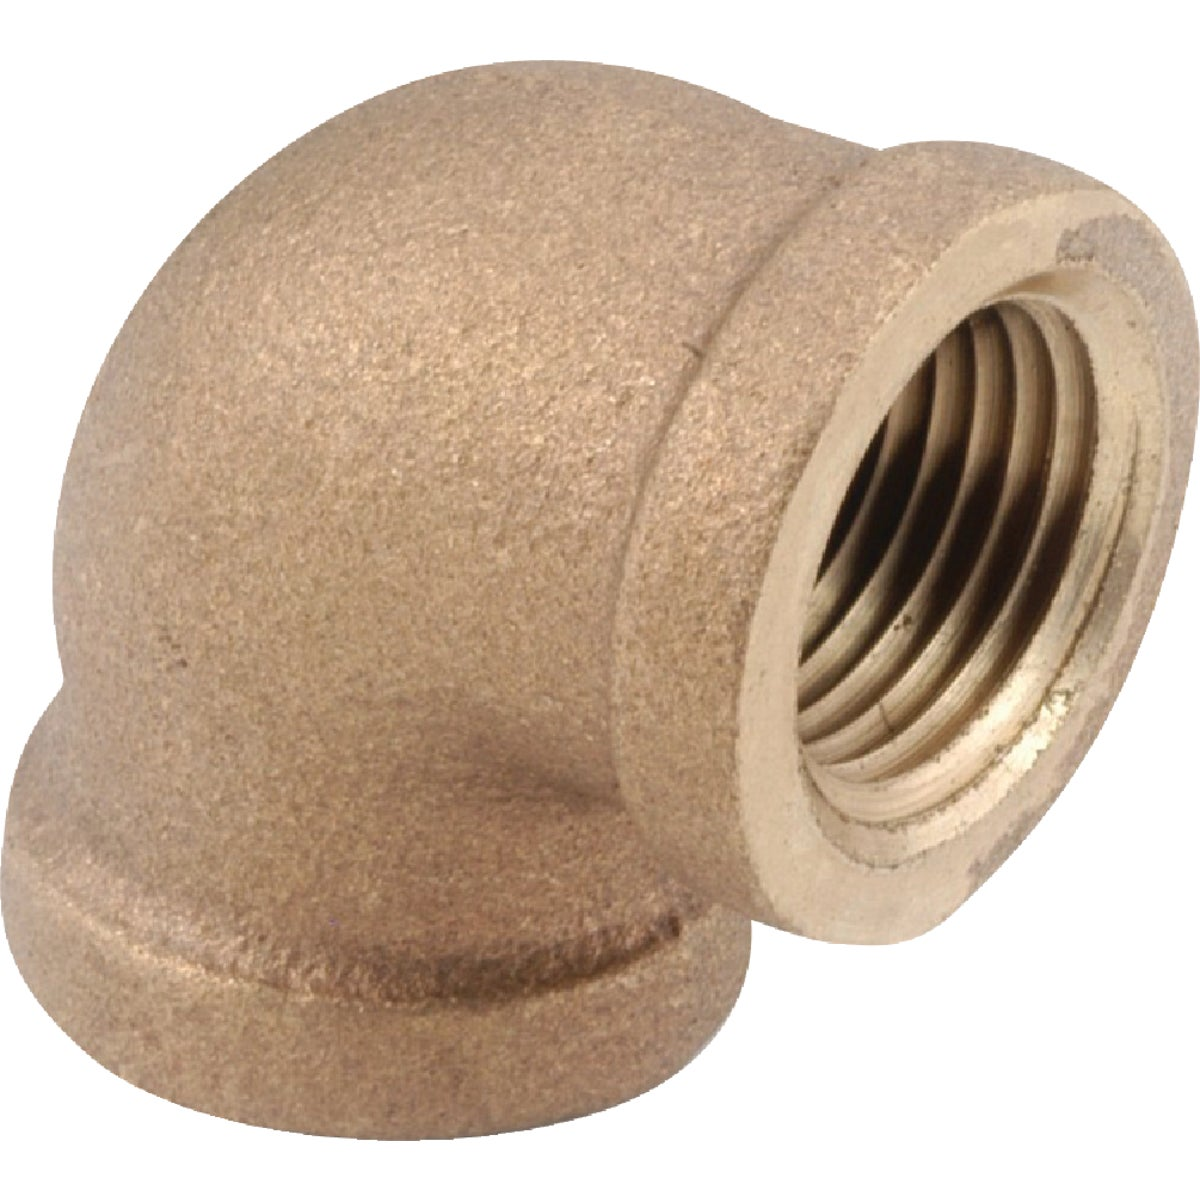 "1/2"" 90D BRASS ELBOW - 738100-08 by Anderson Metals Corp"